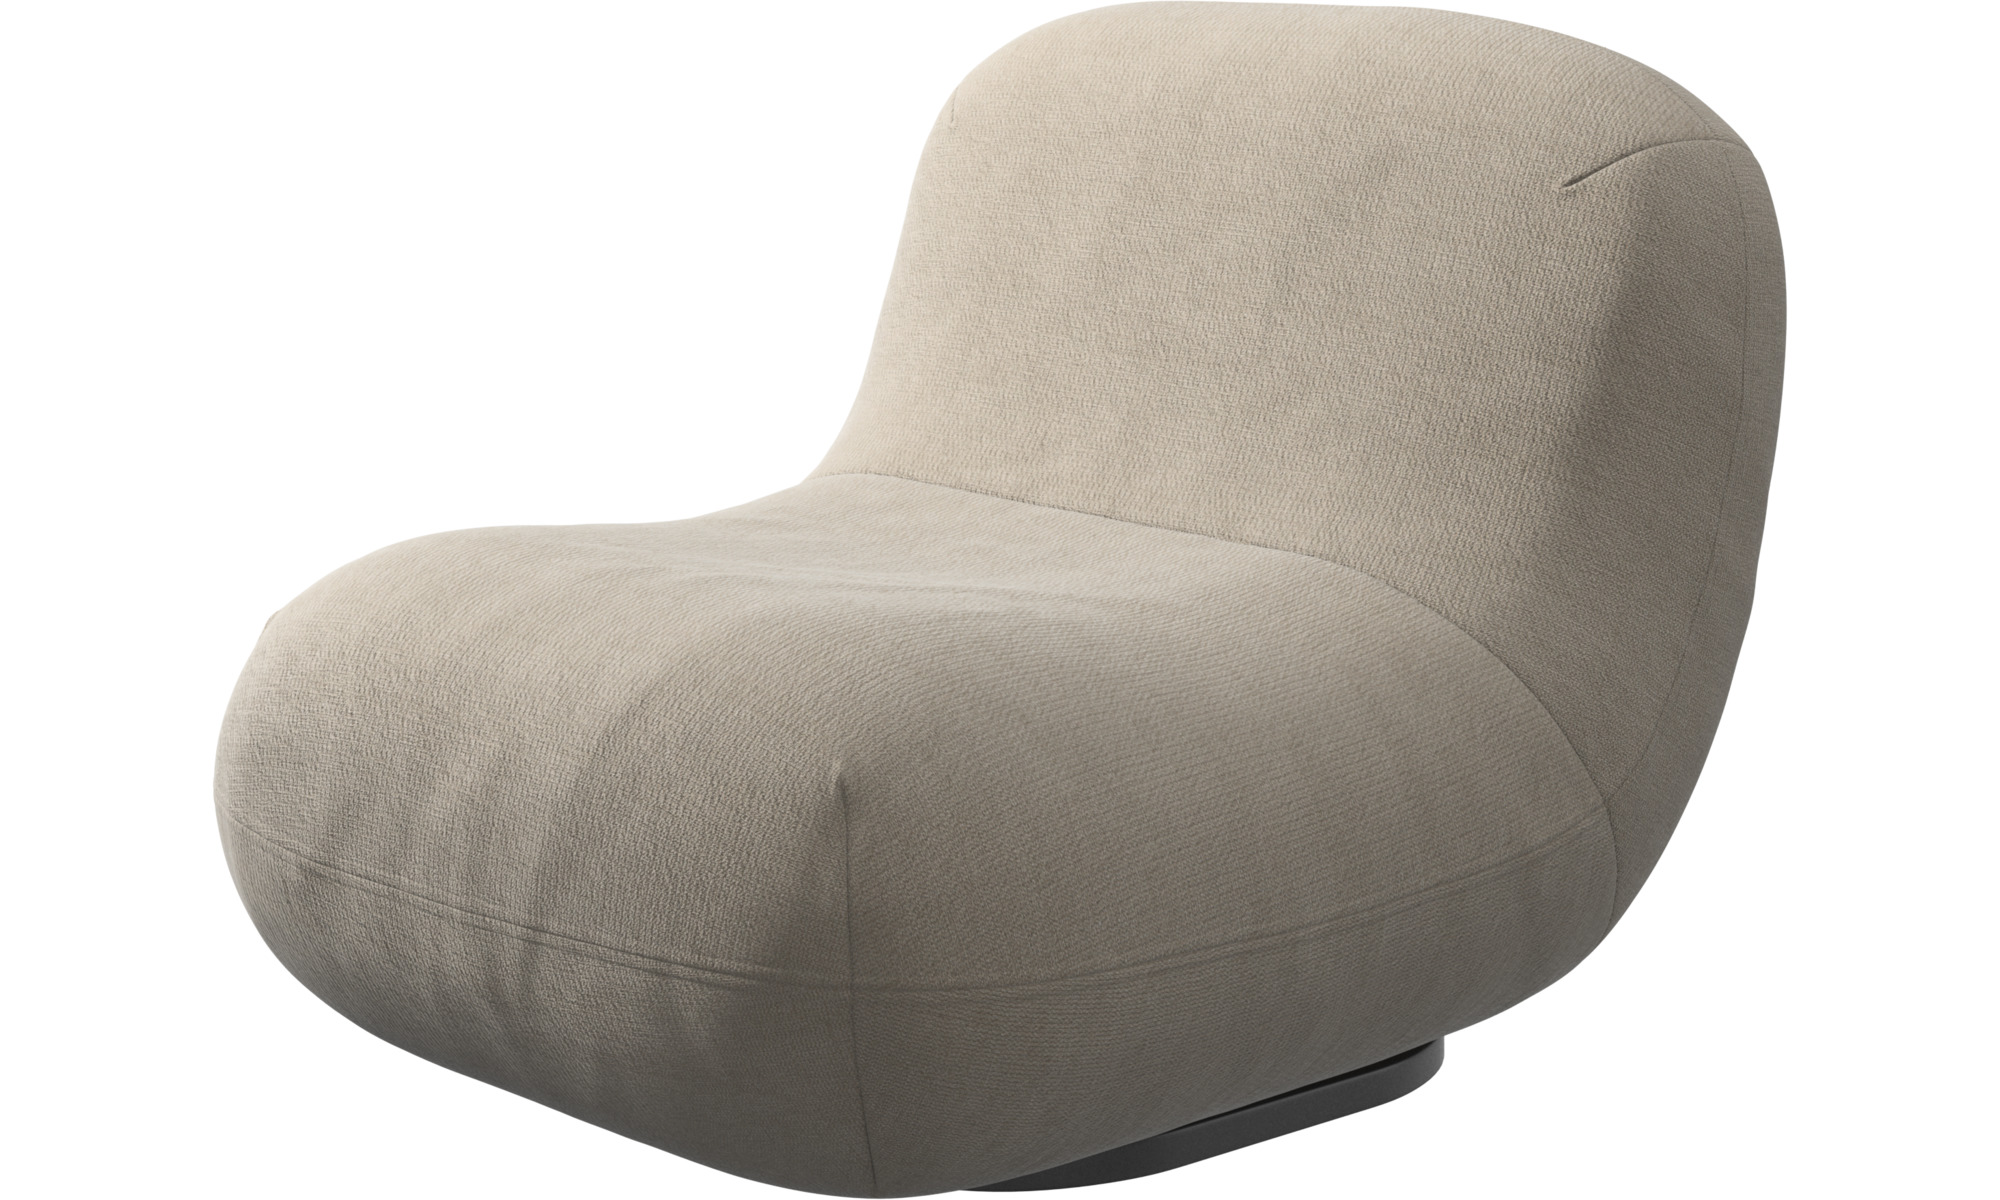 Armchairs - Chelsea chair - Beige - Fabric